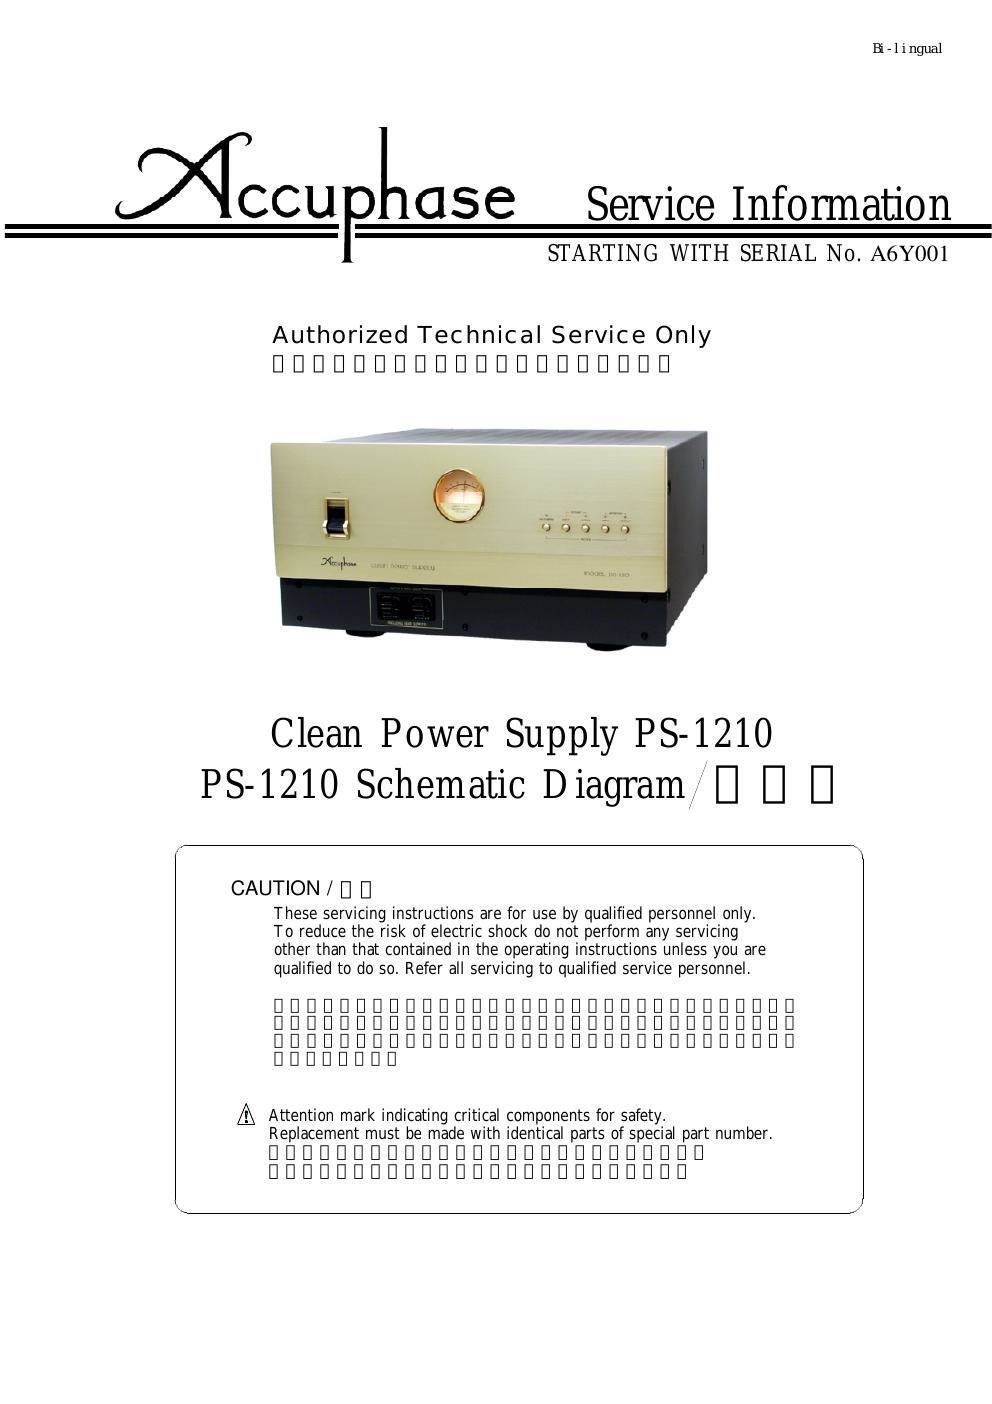 Accuphase PS1210 psu servicemanual